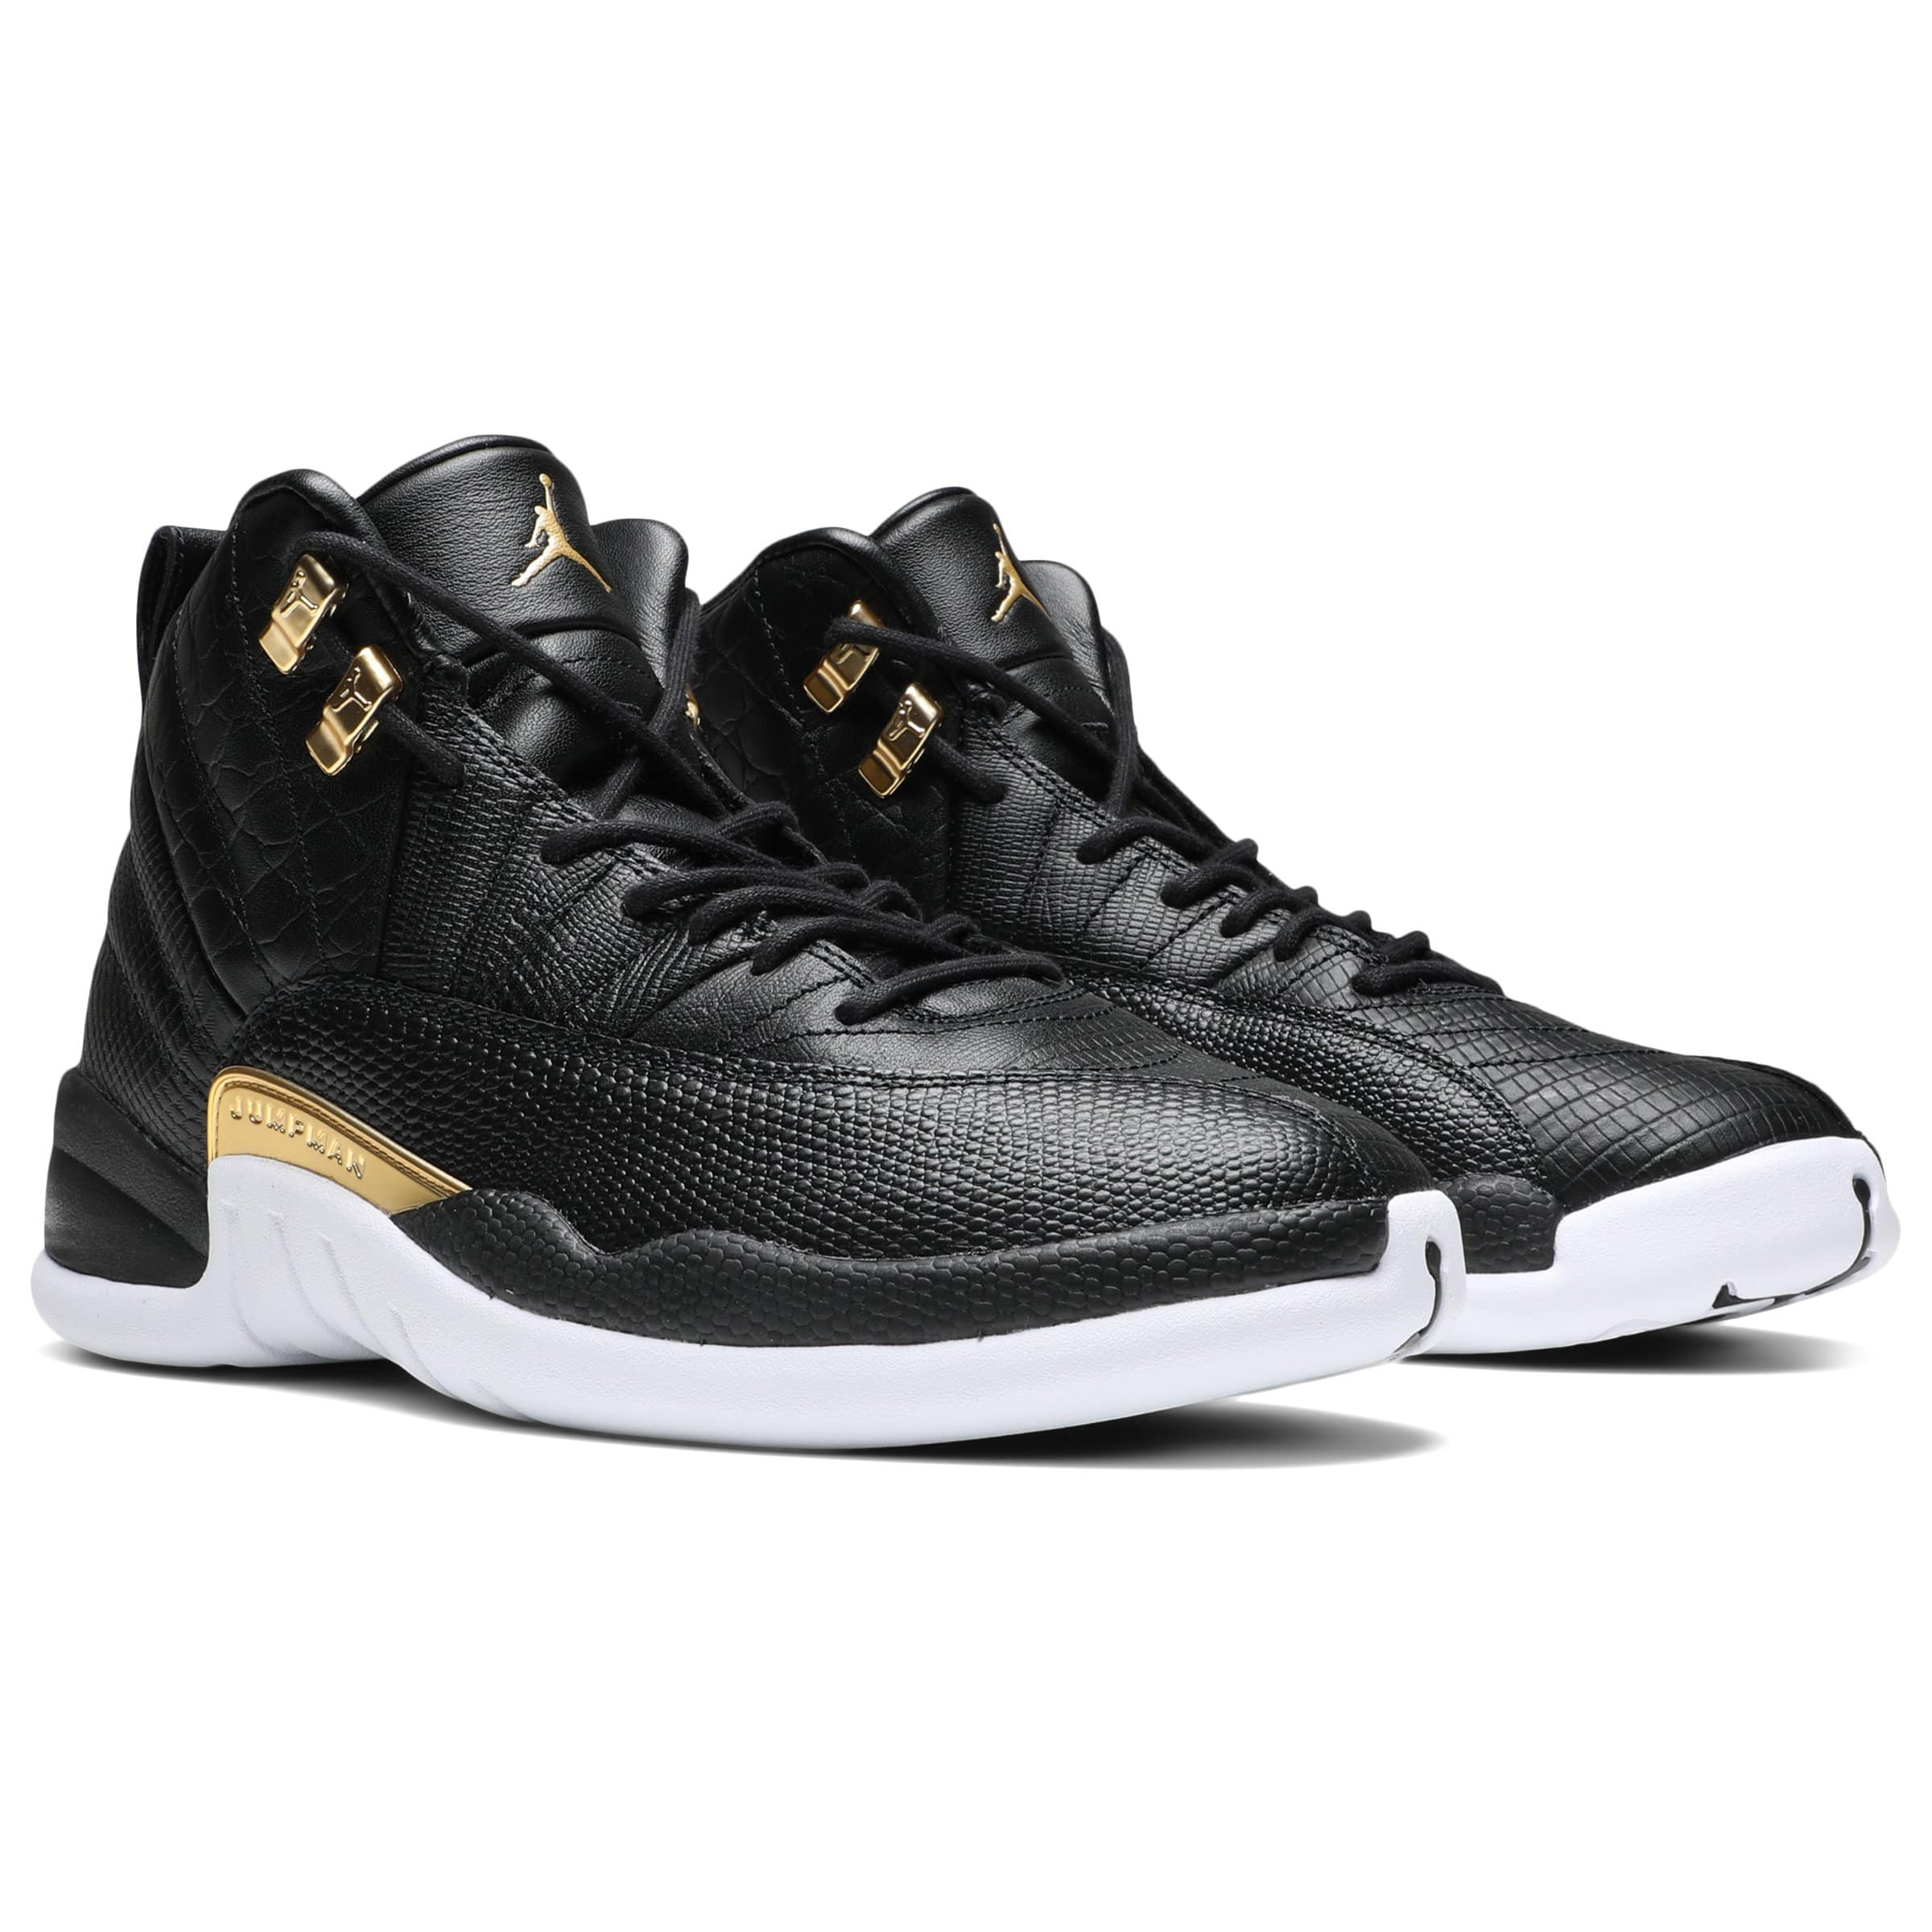 Air Jordan Shoes WOMEN'S AIR JORDAN 12 RETRO